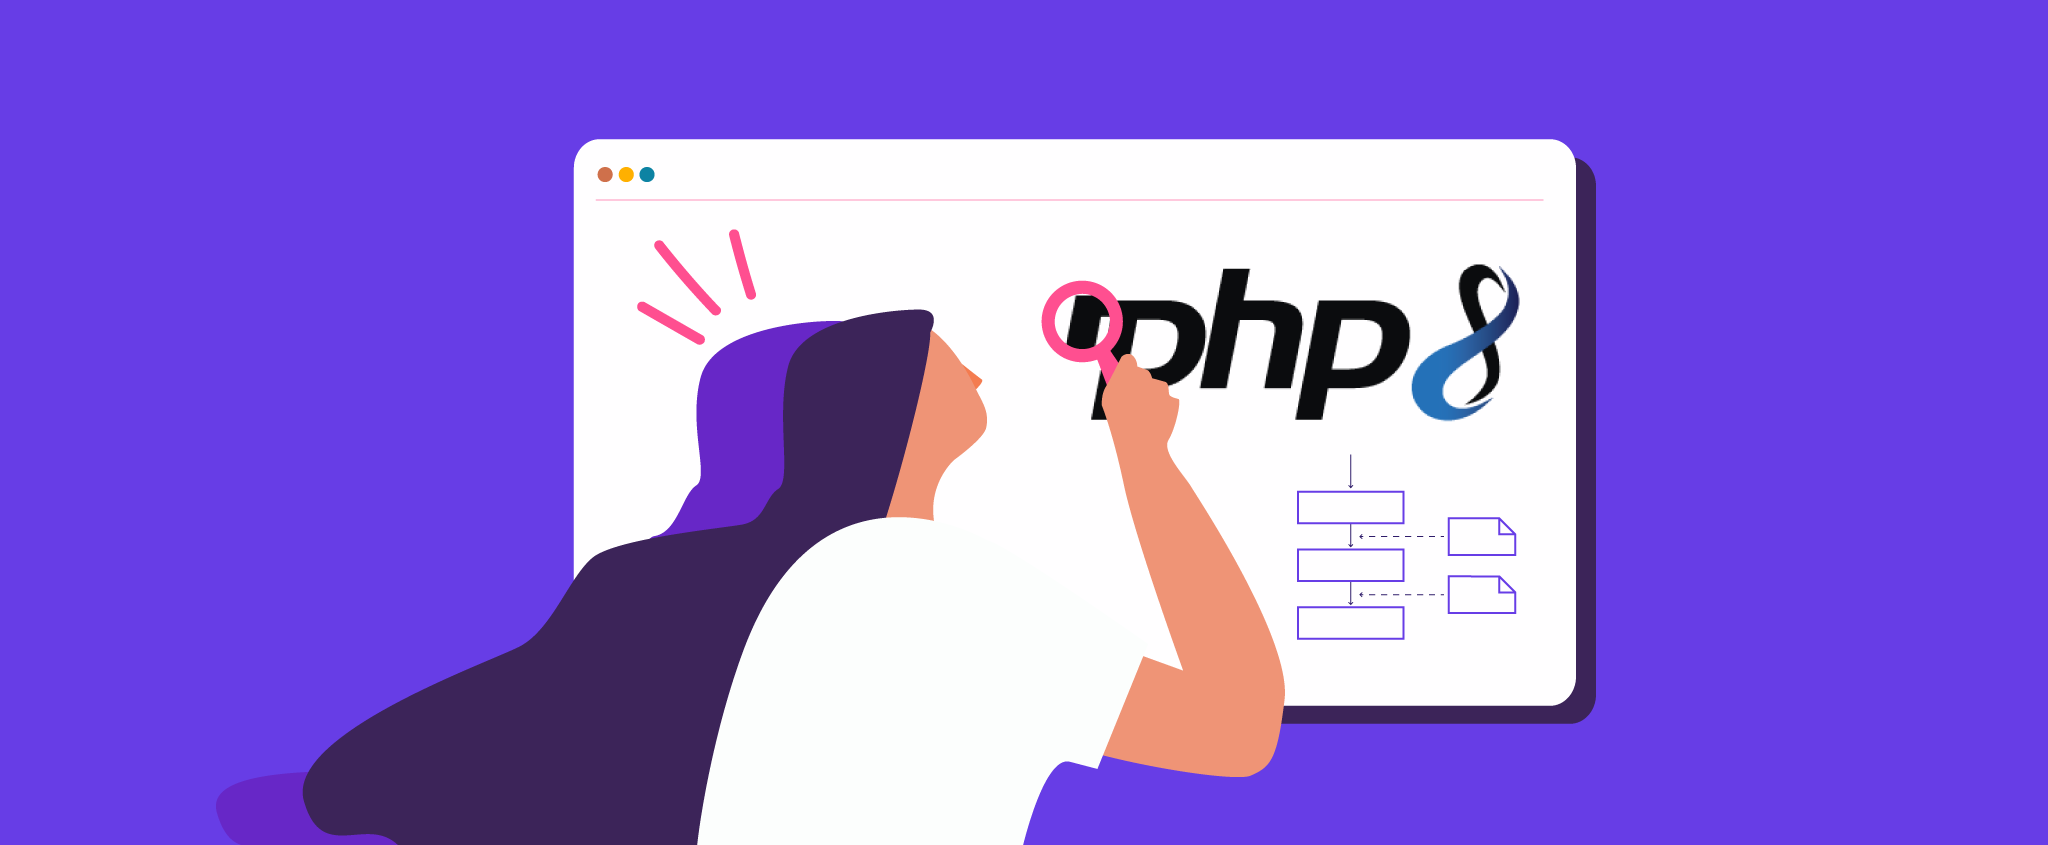 PHP 8.0: Introducing the New PHP Version